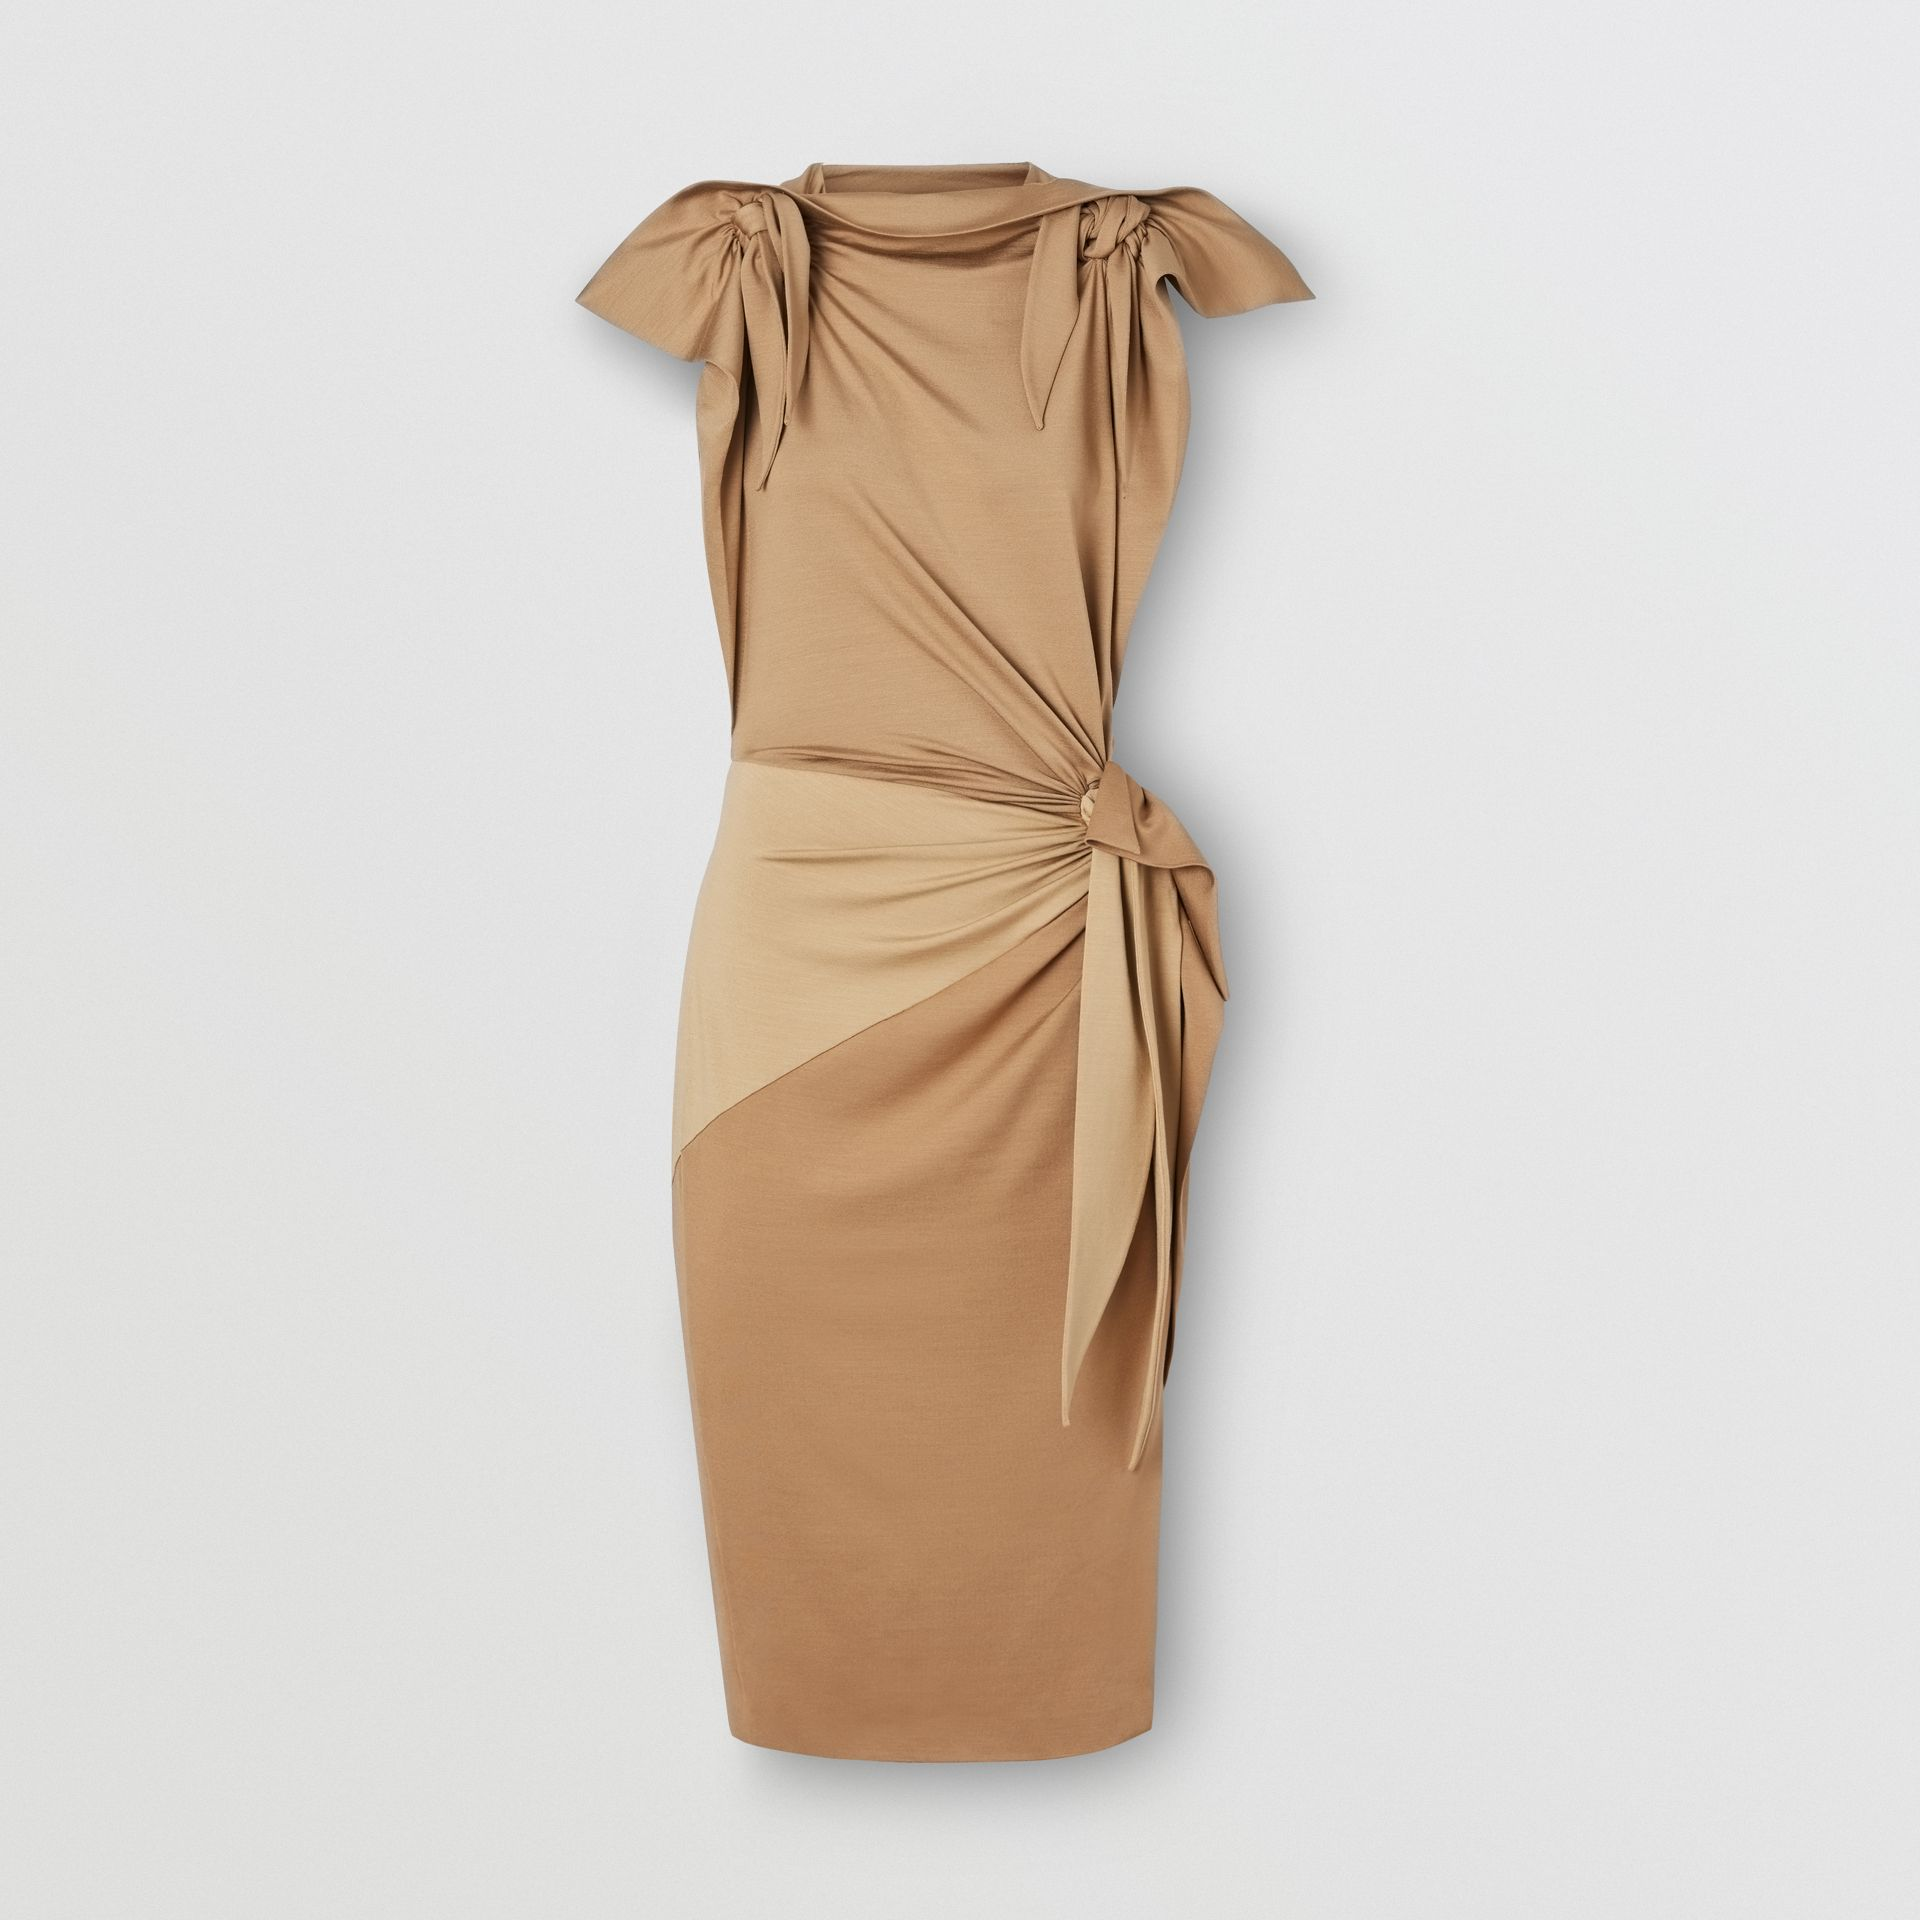 Tie Detail Tri-tone Silk Jersey Dress in Wheat - Women | Burberry - gallery image 3